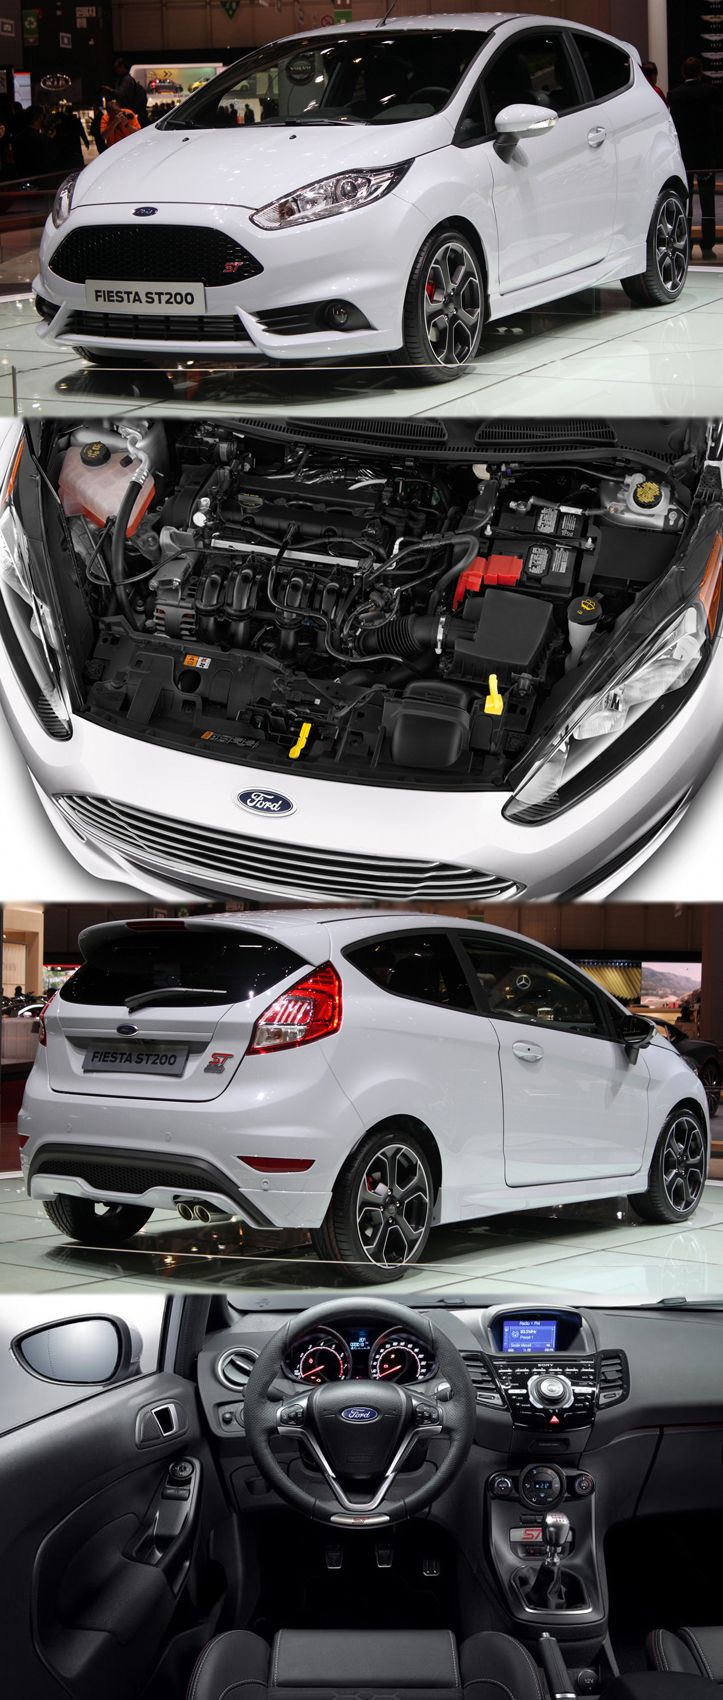 Ford fiesta st200 will cost you 22 745 more info at https